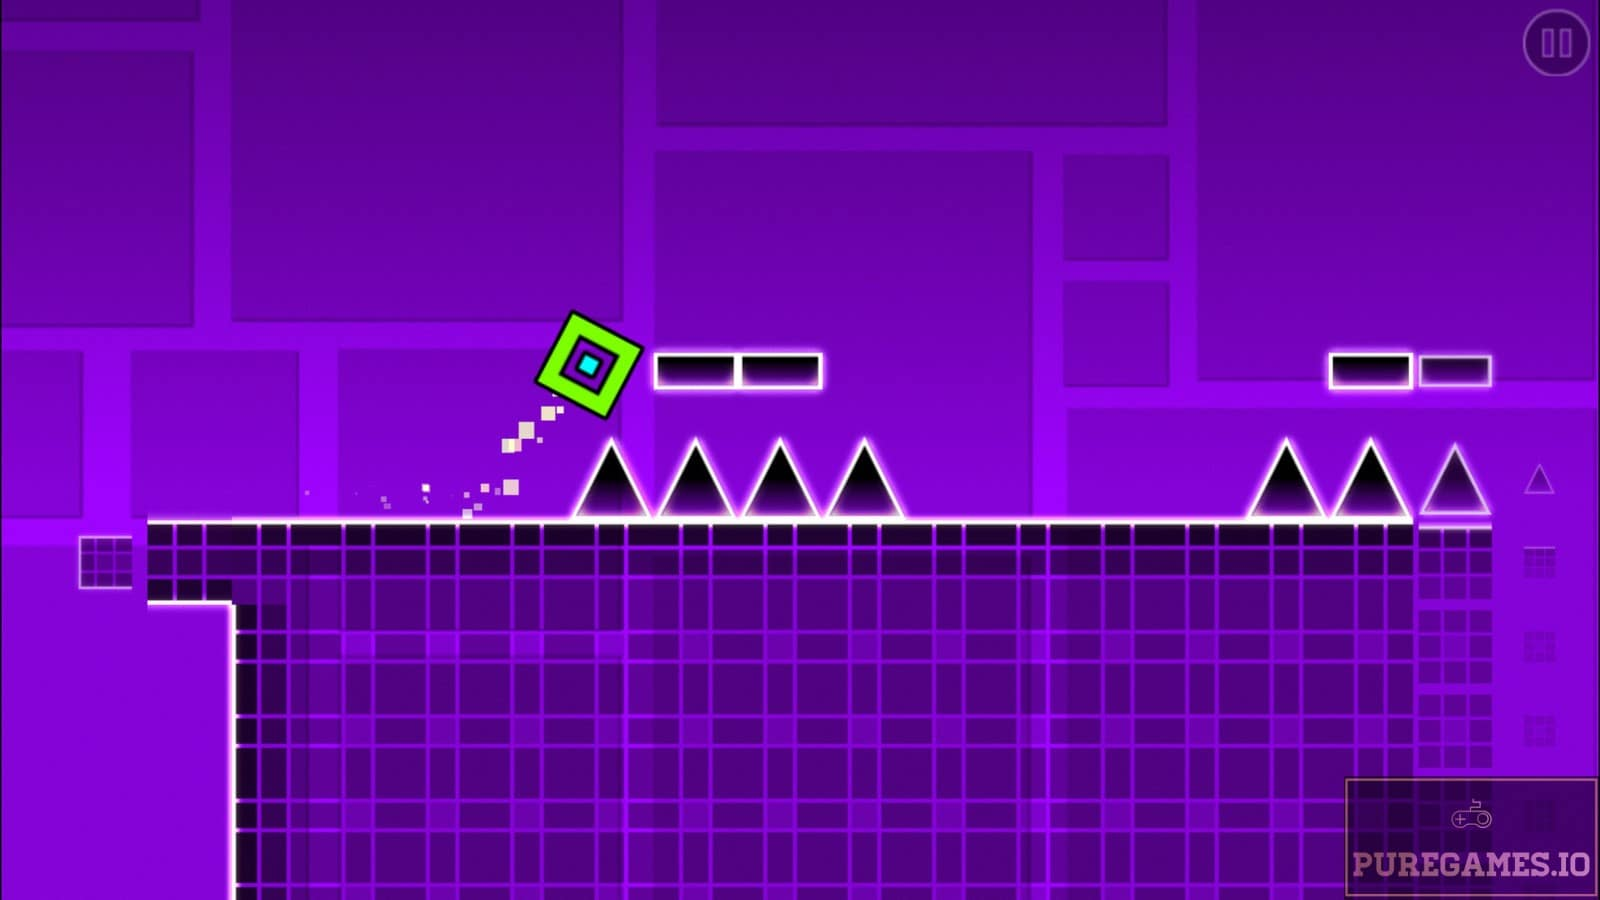 Download Geometry Dash Mod Apk For Android Ios Puregames